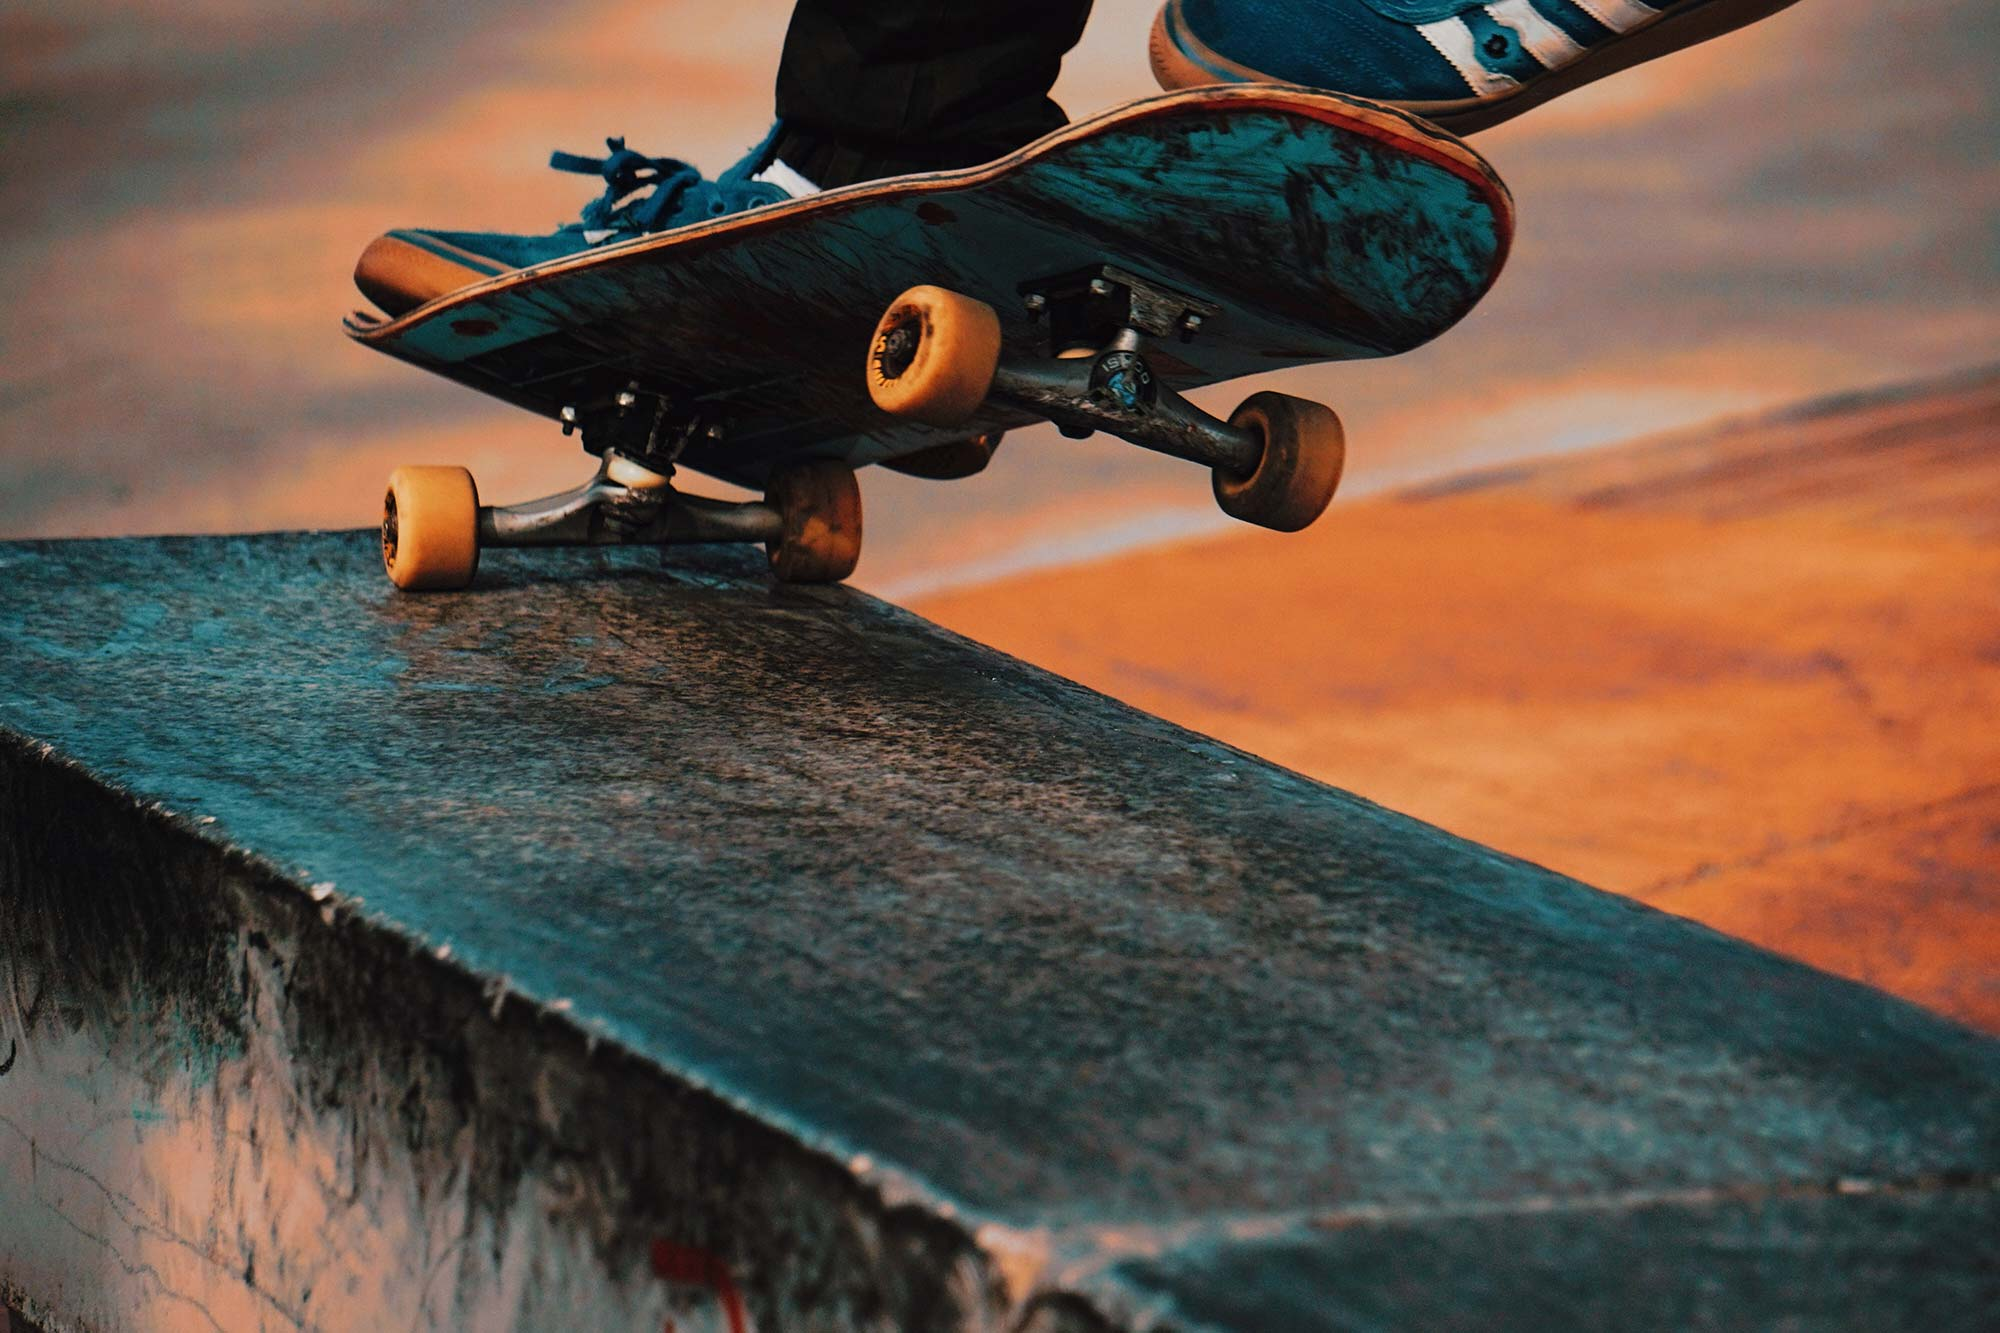 Close up of someone skateboarding